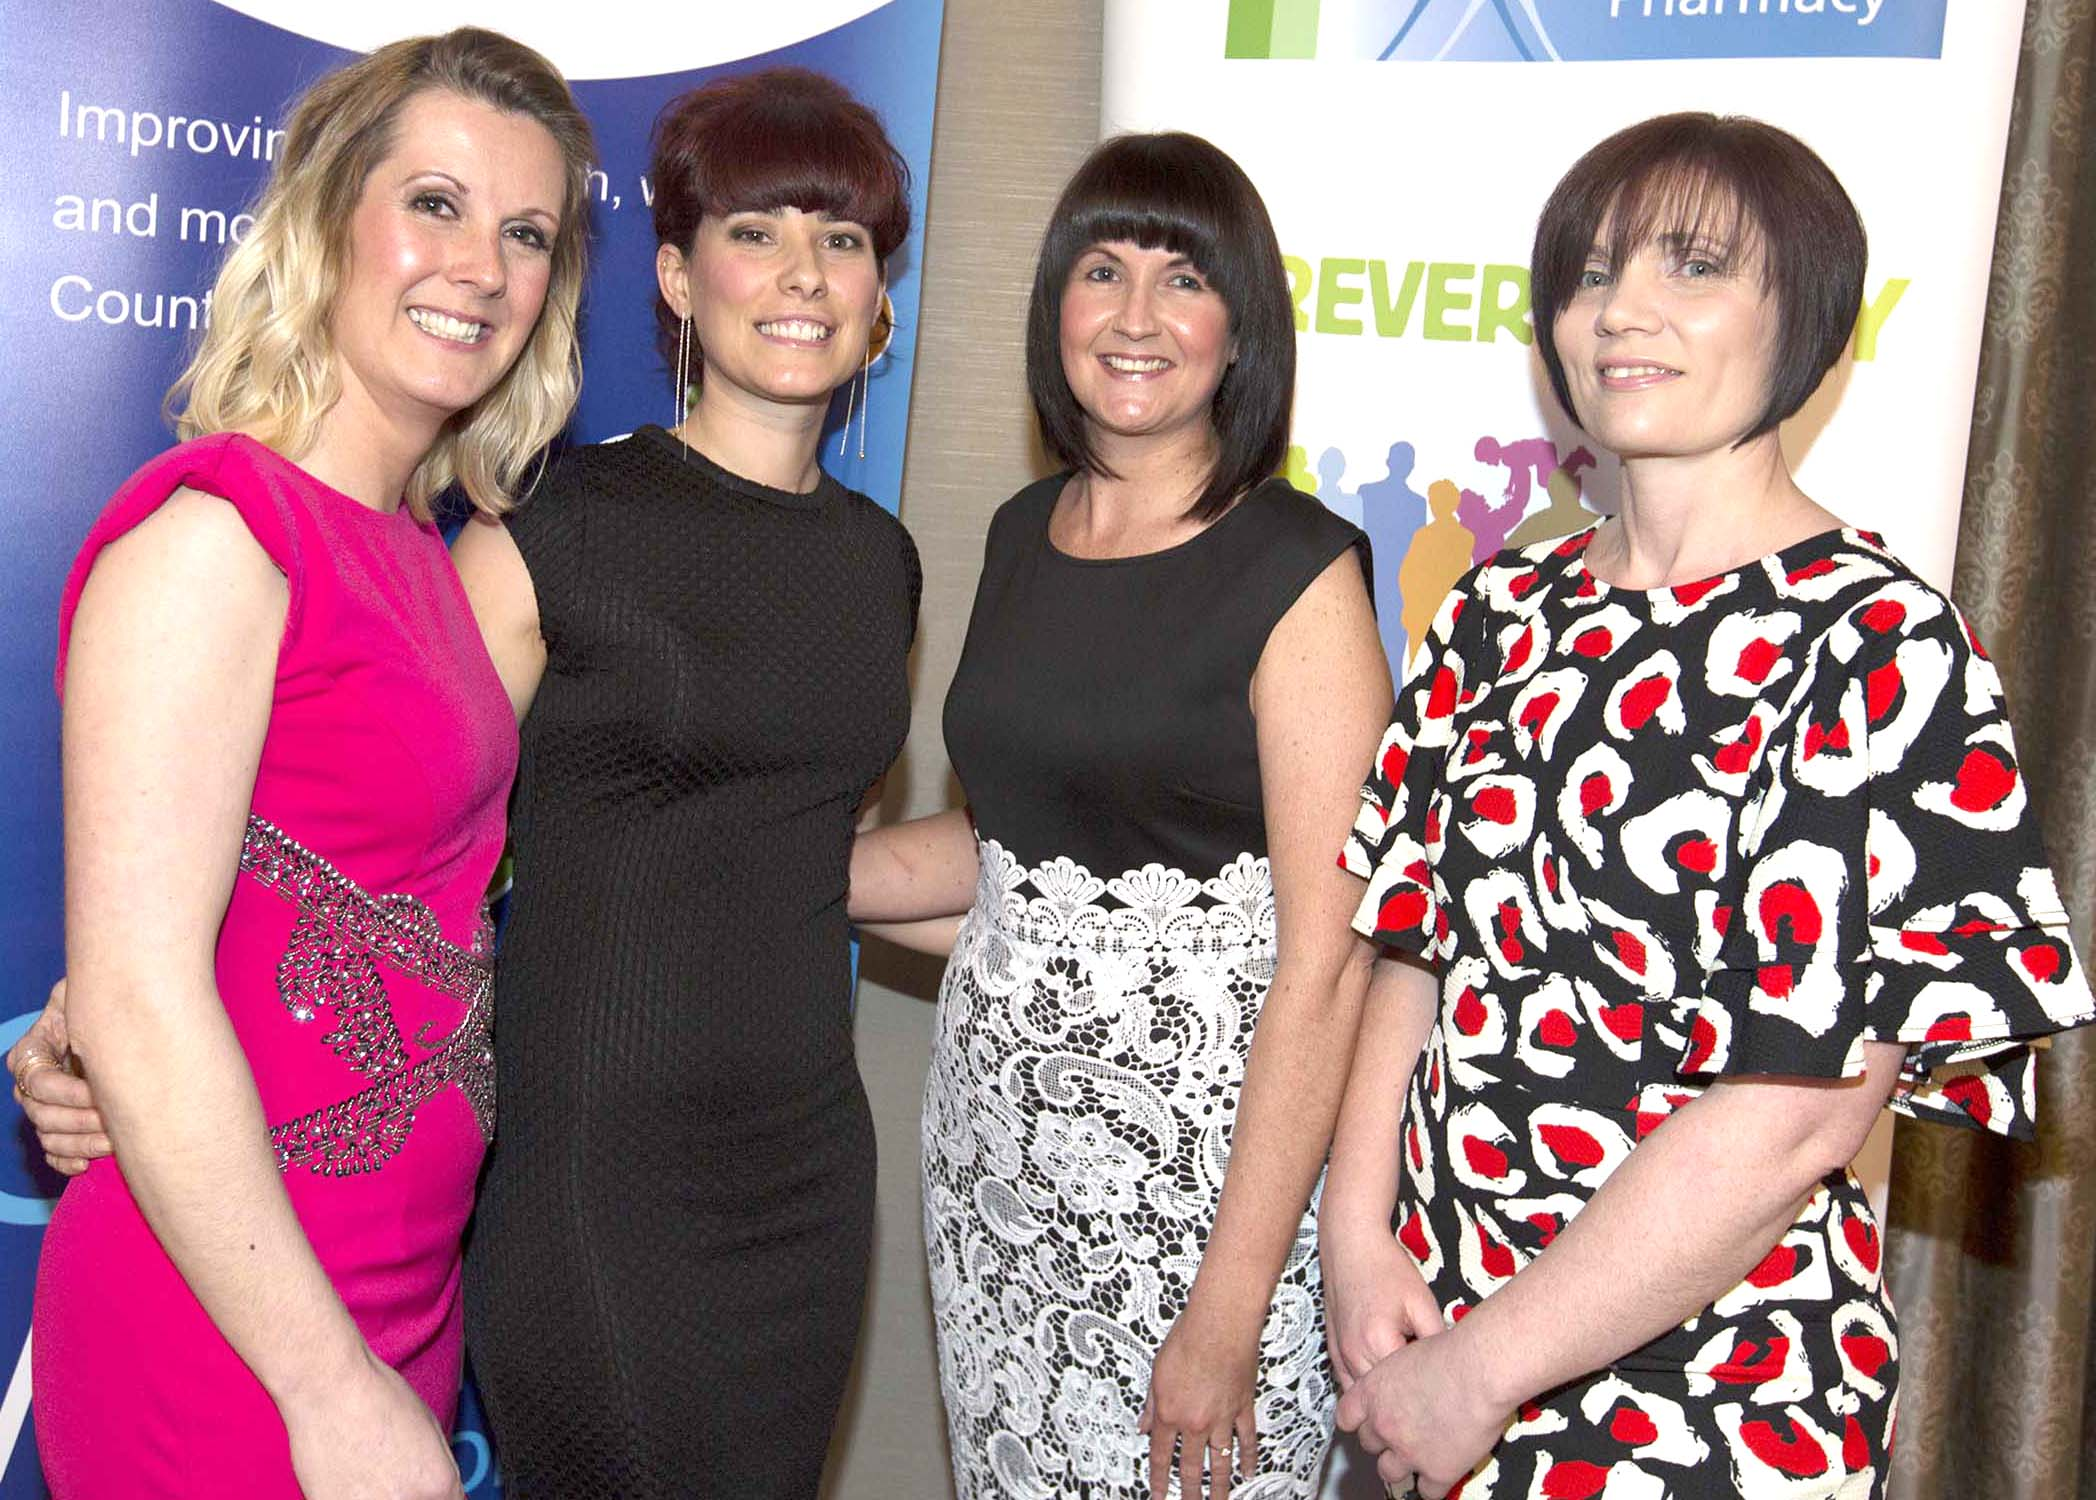 Better Health at Work Awards